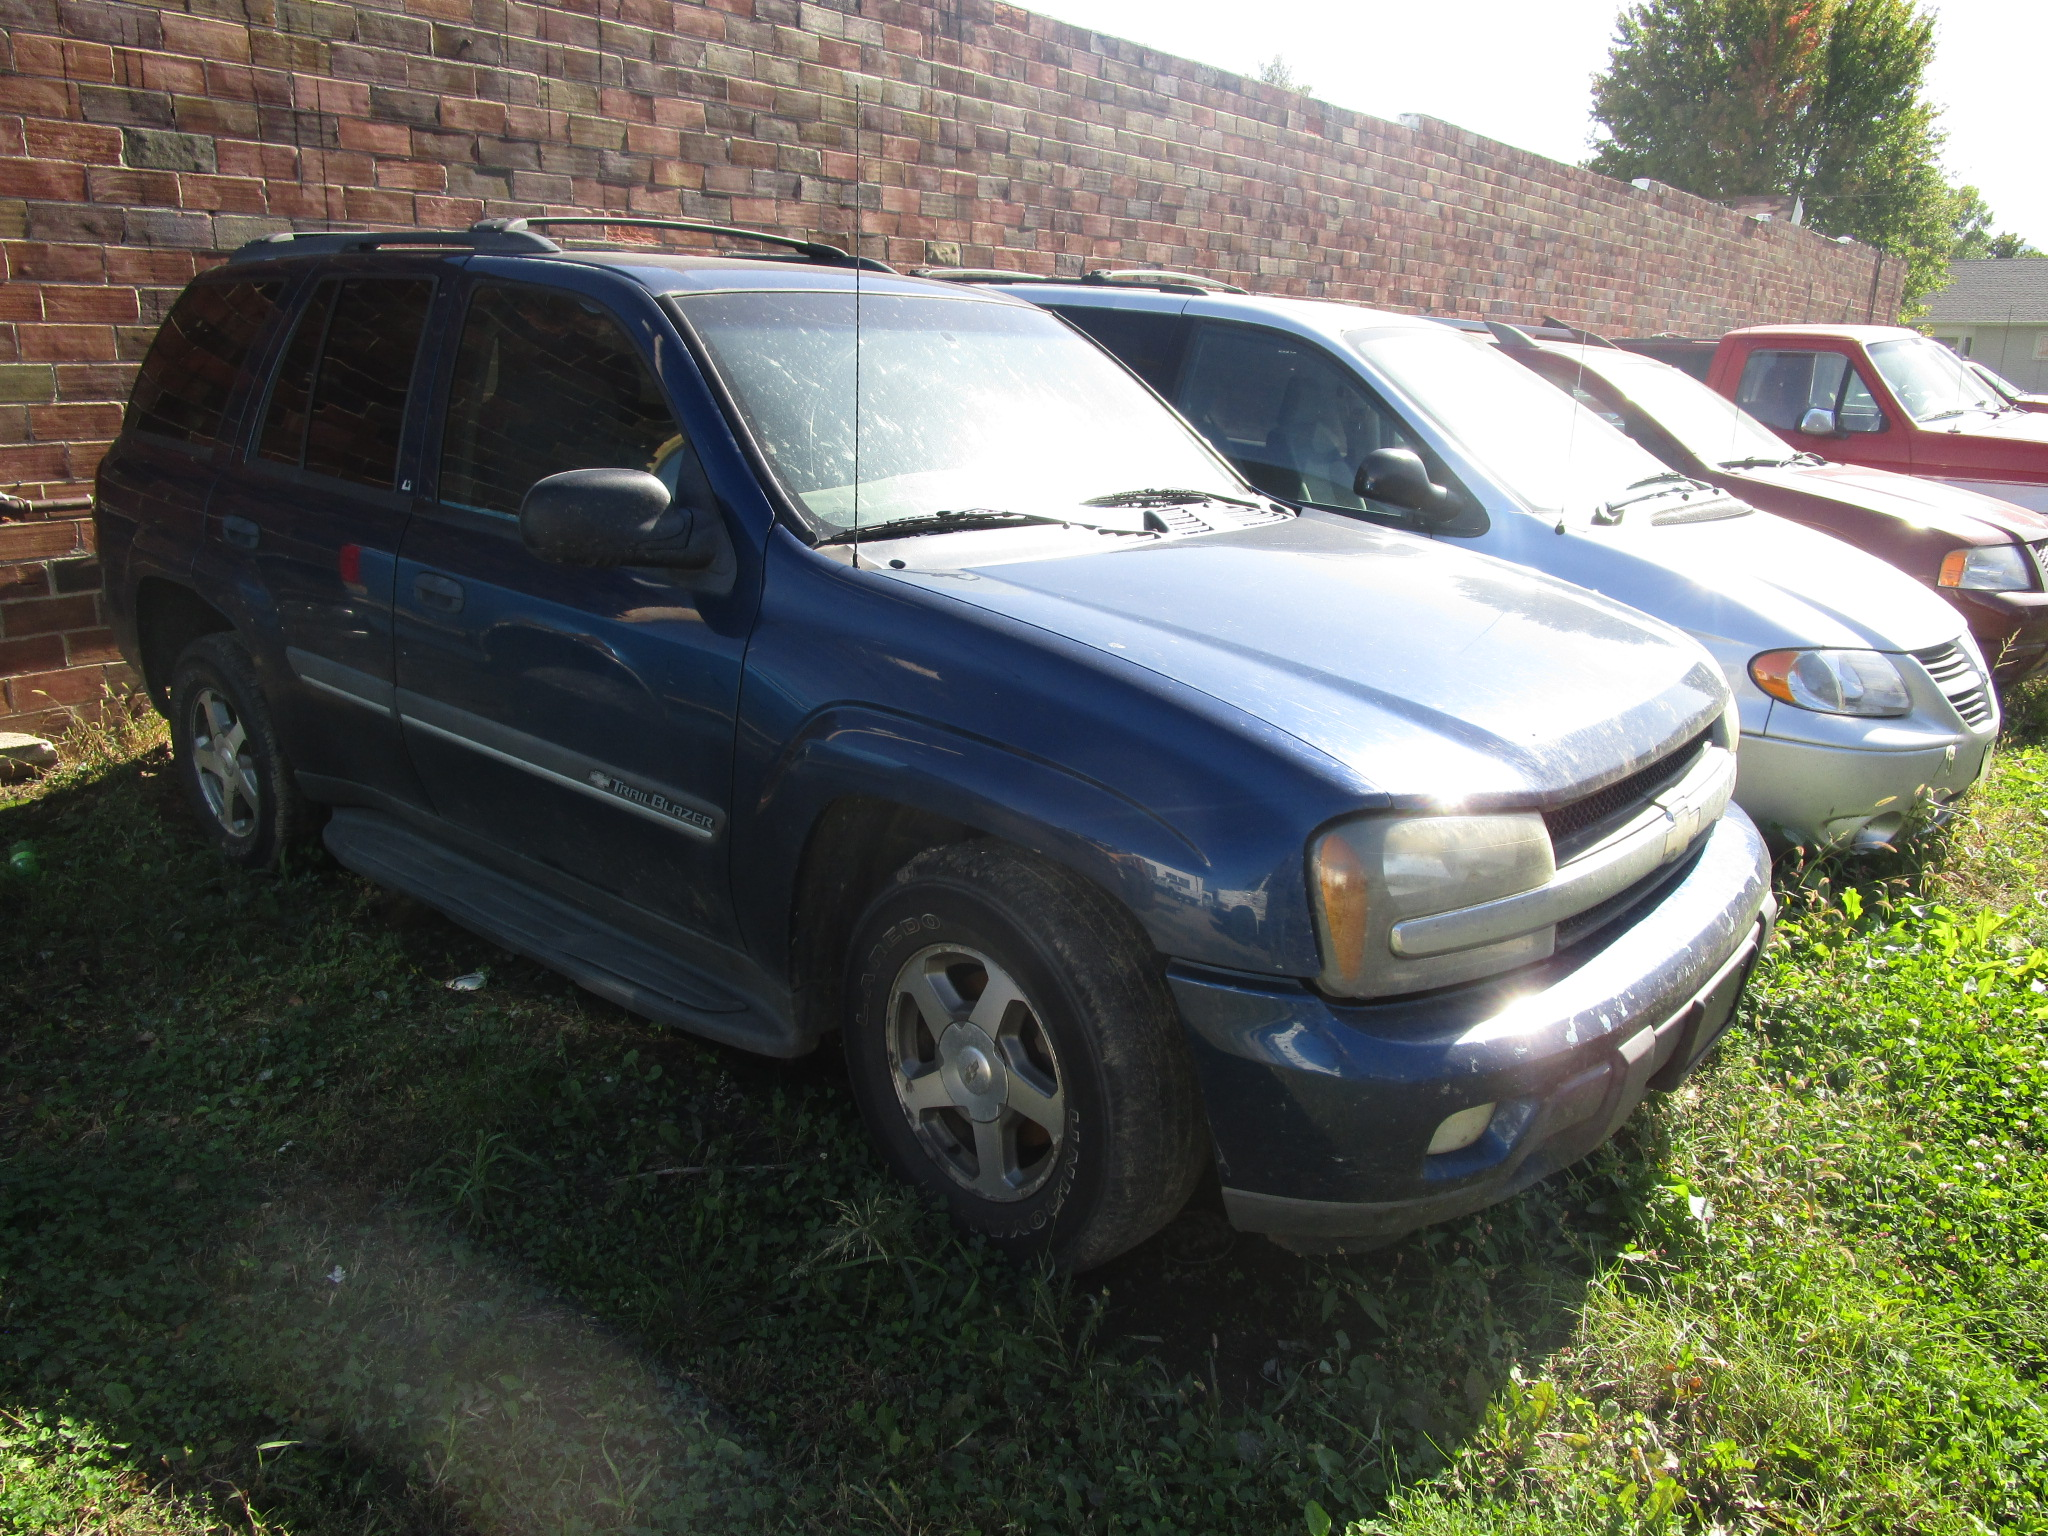 2002 CHEVROLET TRAILBLAZER $2,995